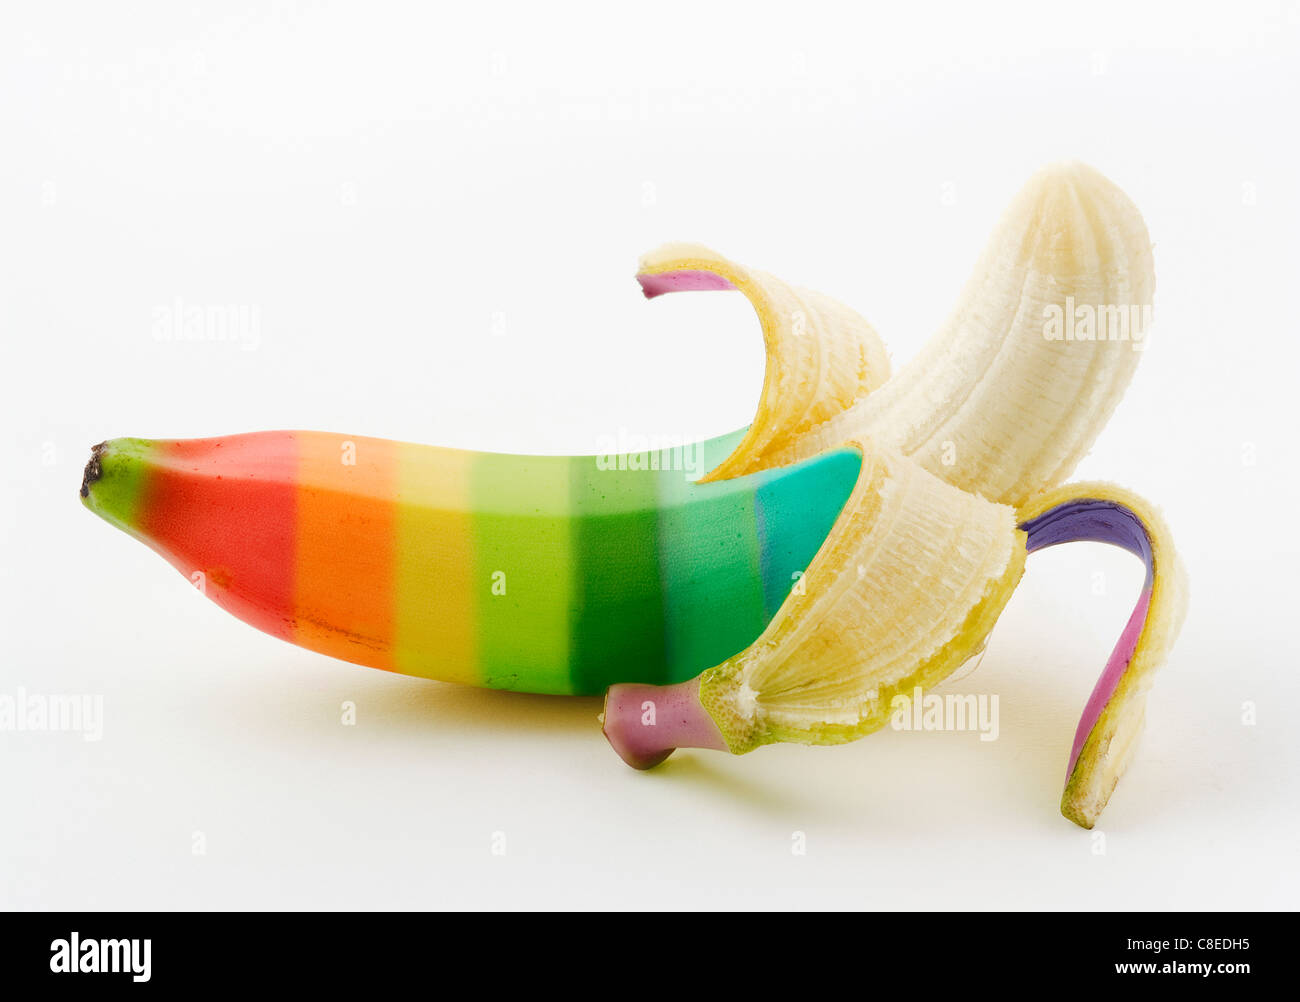 Banane multicolore Photo Stock